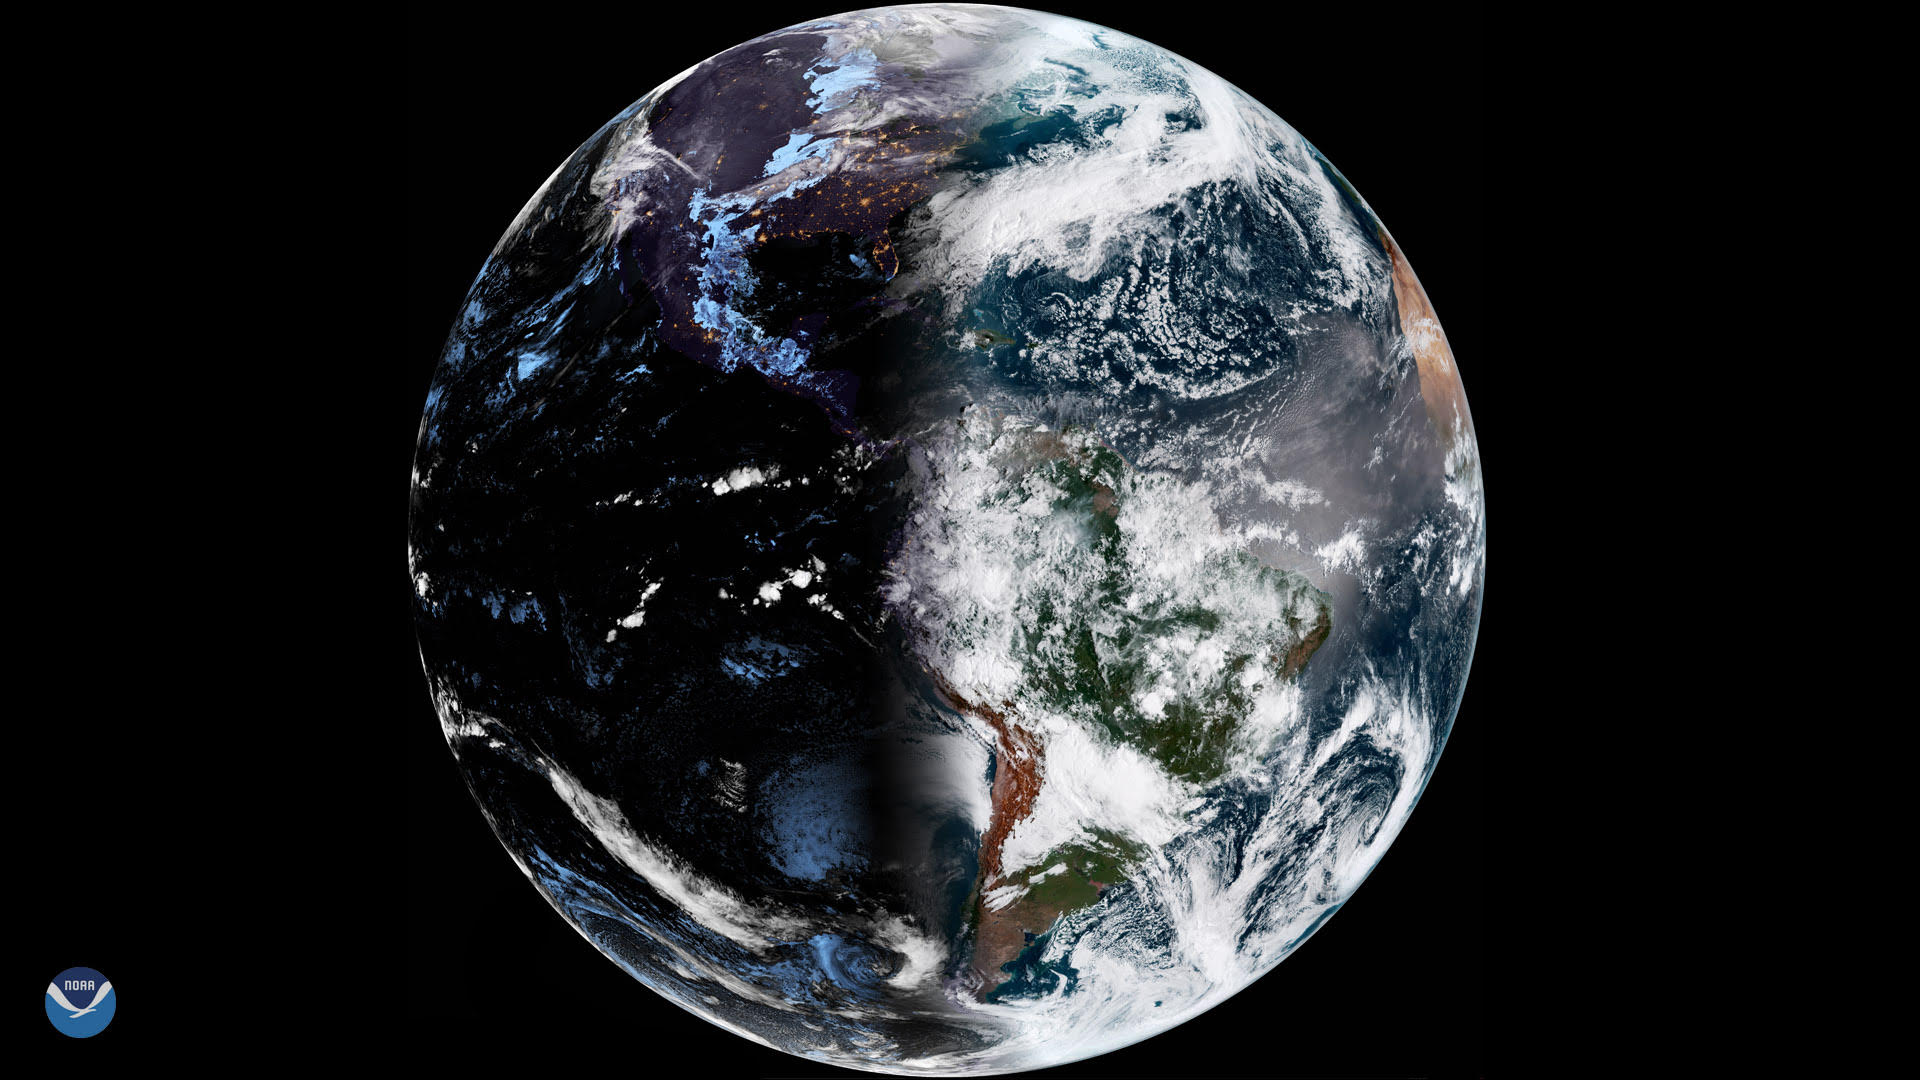 Stunning image shows Earth in 'perfect balance' at point of Equinox